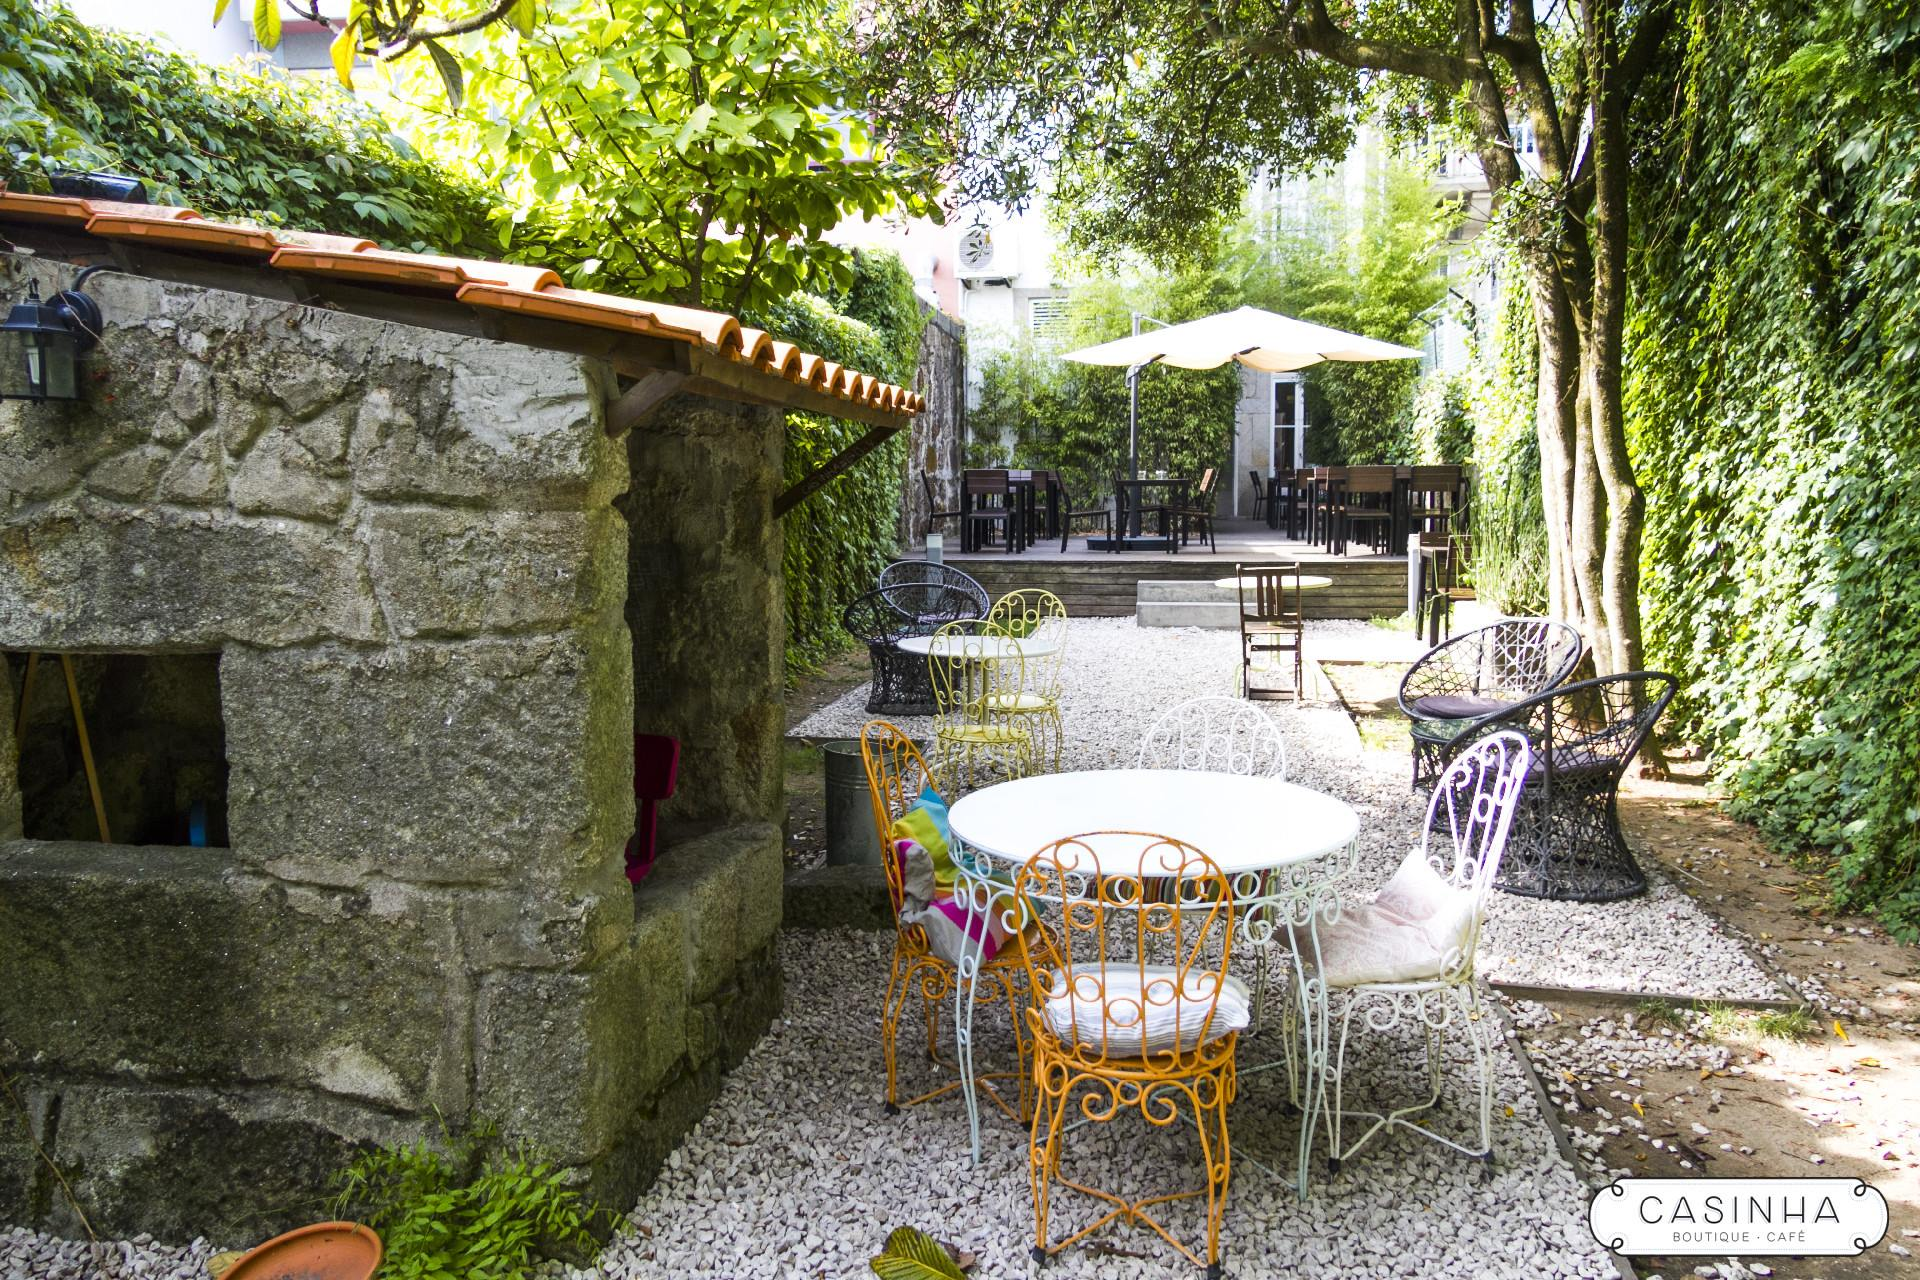 What to visit in Portugal: 10 Secret Gardens in Porto - Casinha Boutique Café what to visit in portugal What to visit in Portugal: 10 Secret Gardens in Porto 20900566 1636552393068779 7979388186945179633 o